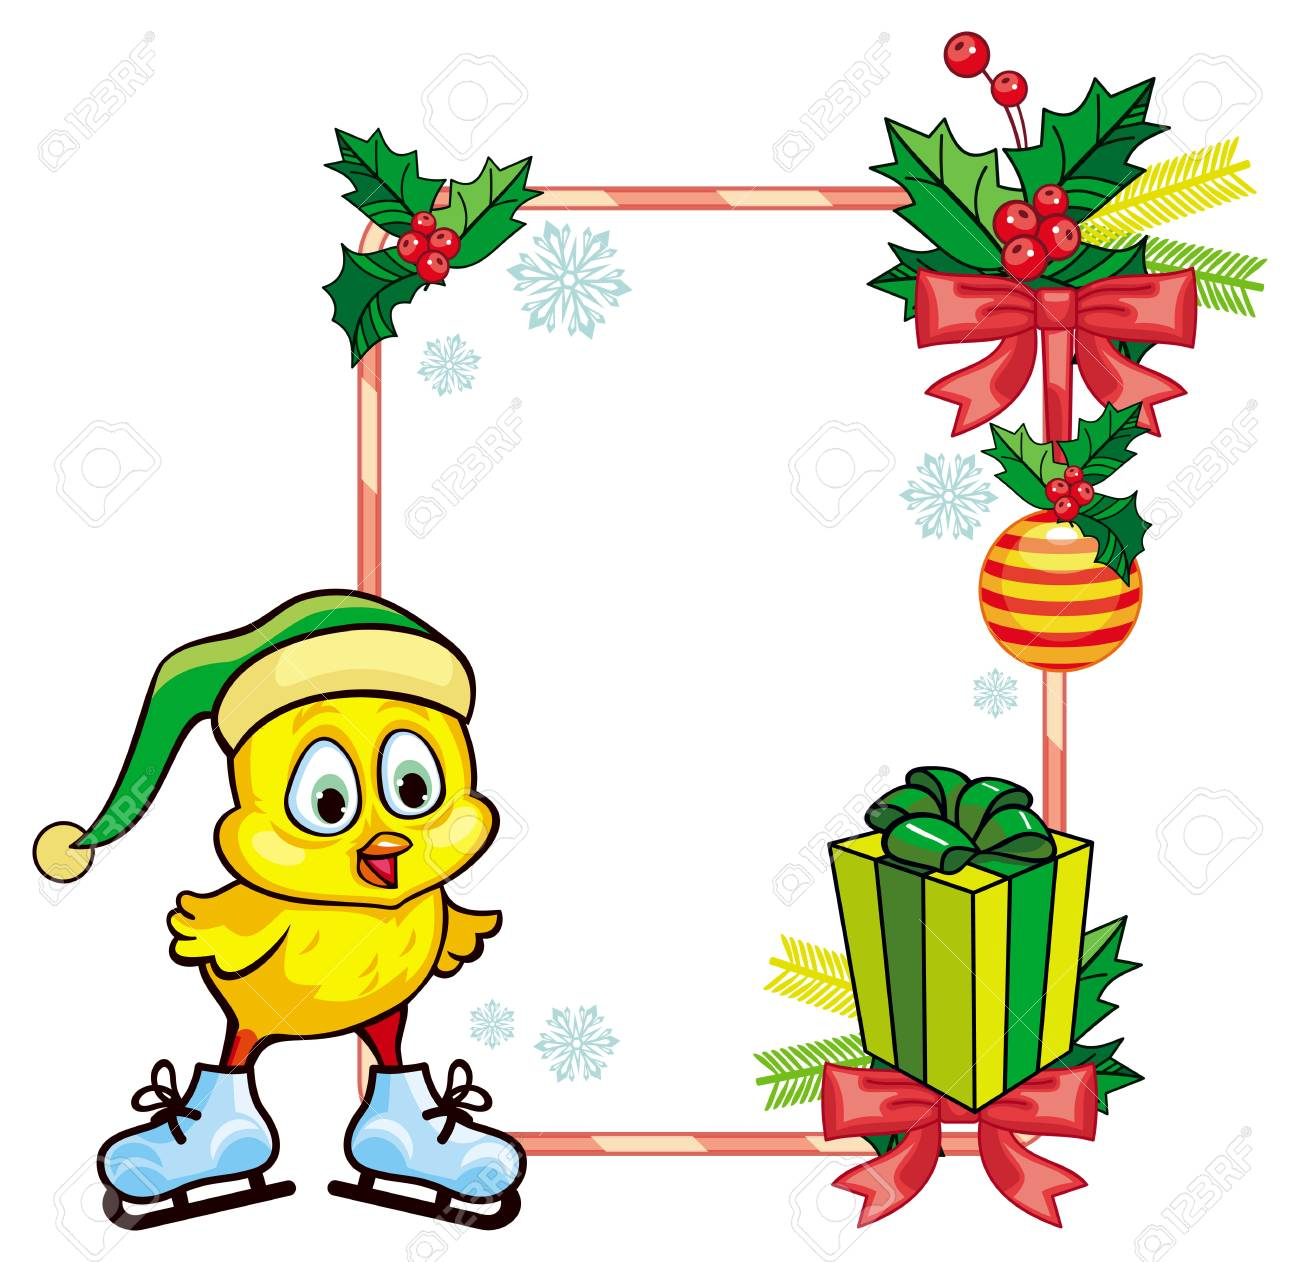 cute chicken in funny hat ice skating christmas holiday frame rh 123rf com